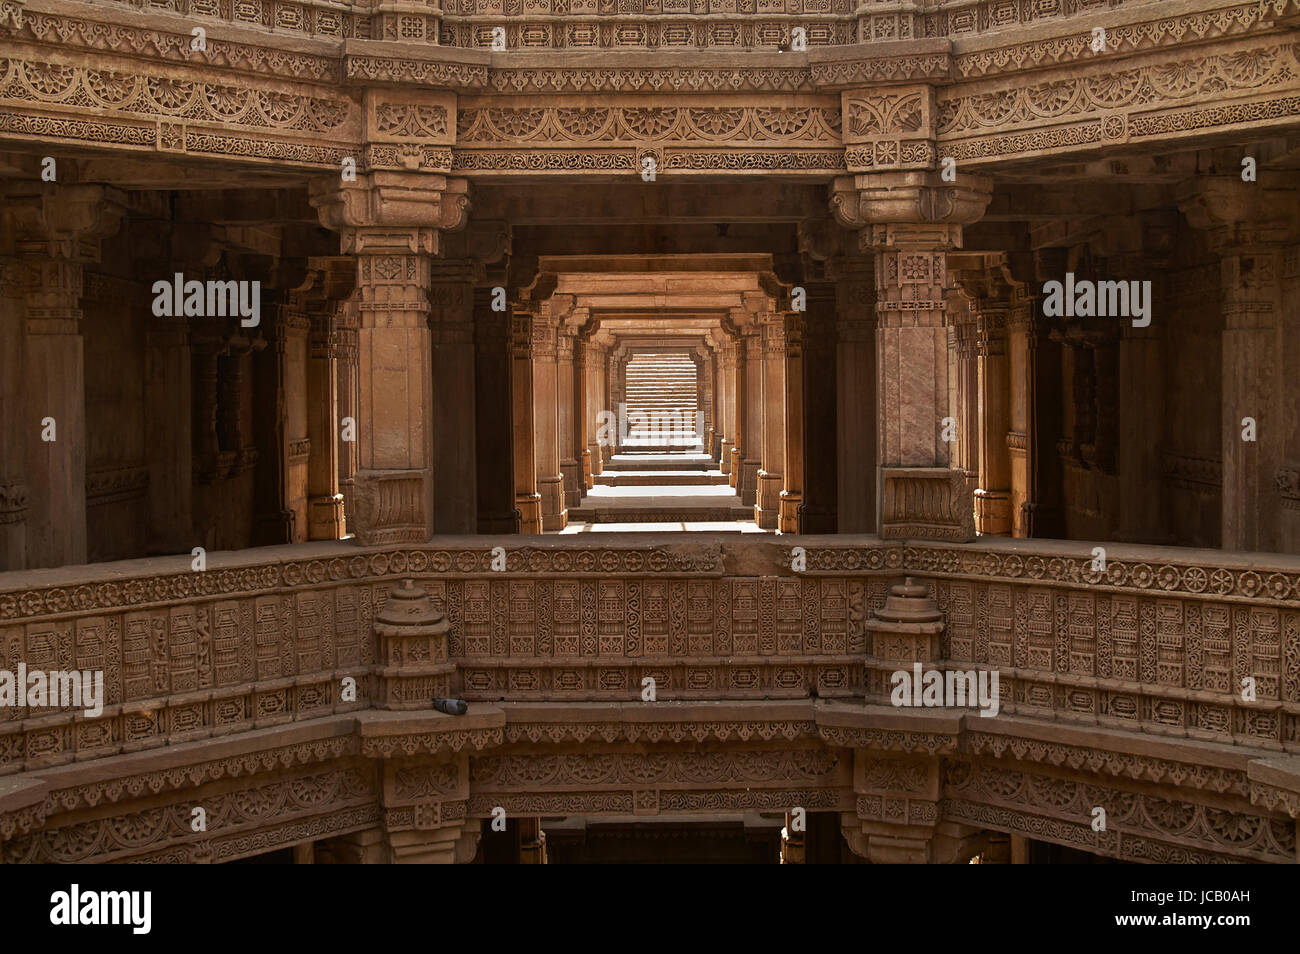 Ornately carved stonework of the Adalaj Stepwell on the outskirts of Ahmedabad, Gujarat, India. Built circa 1499. - Stock Image